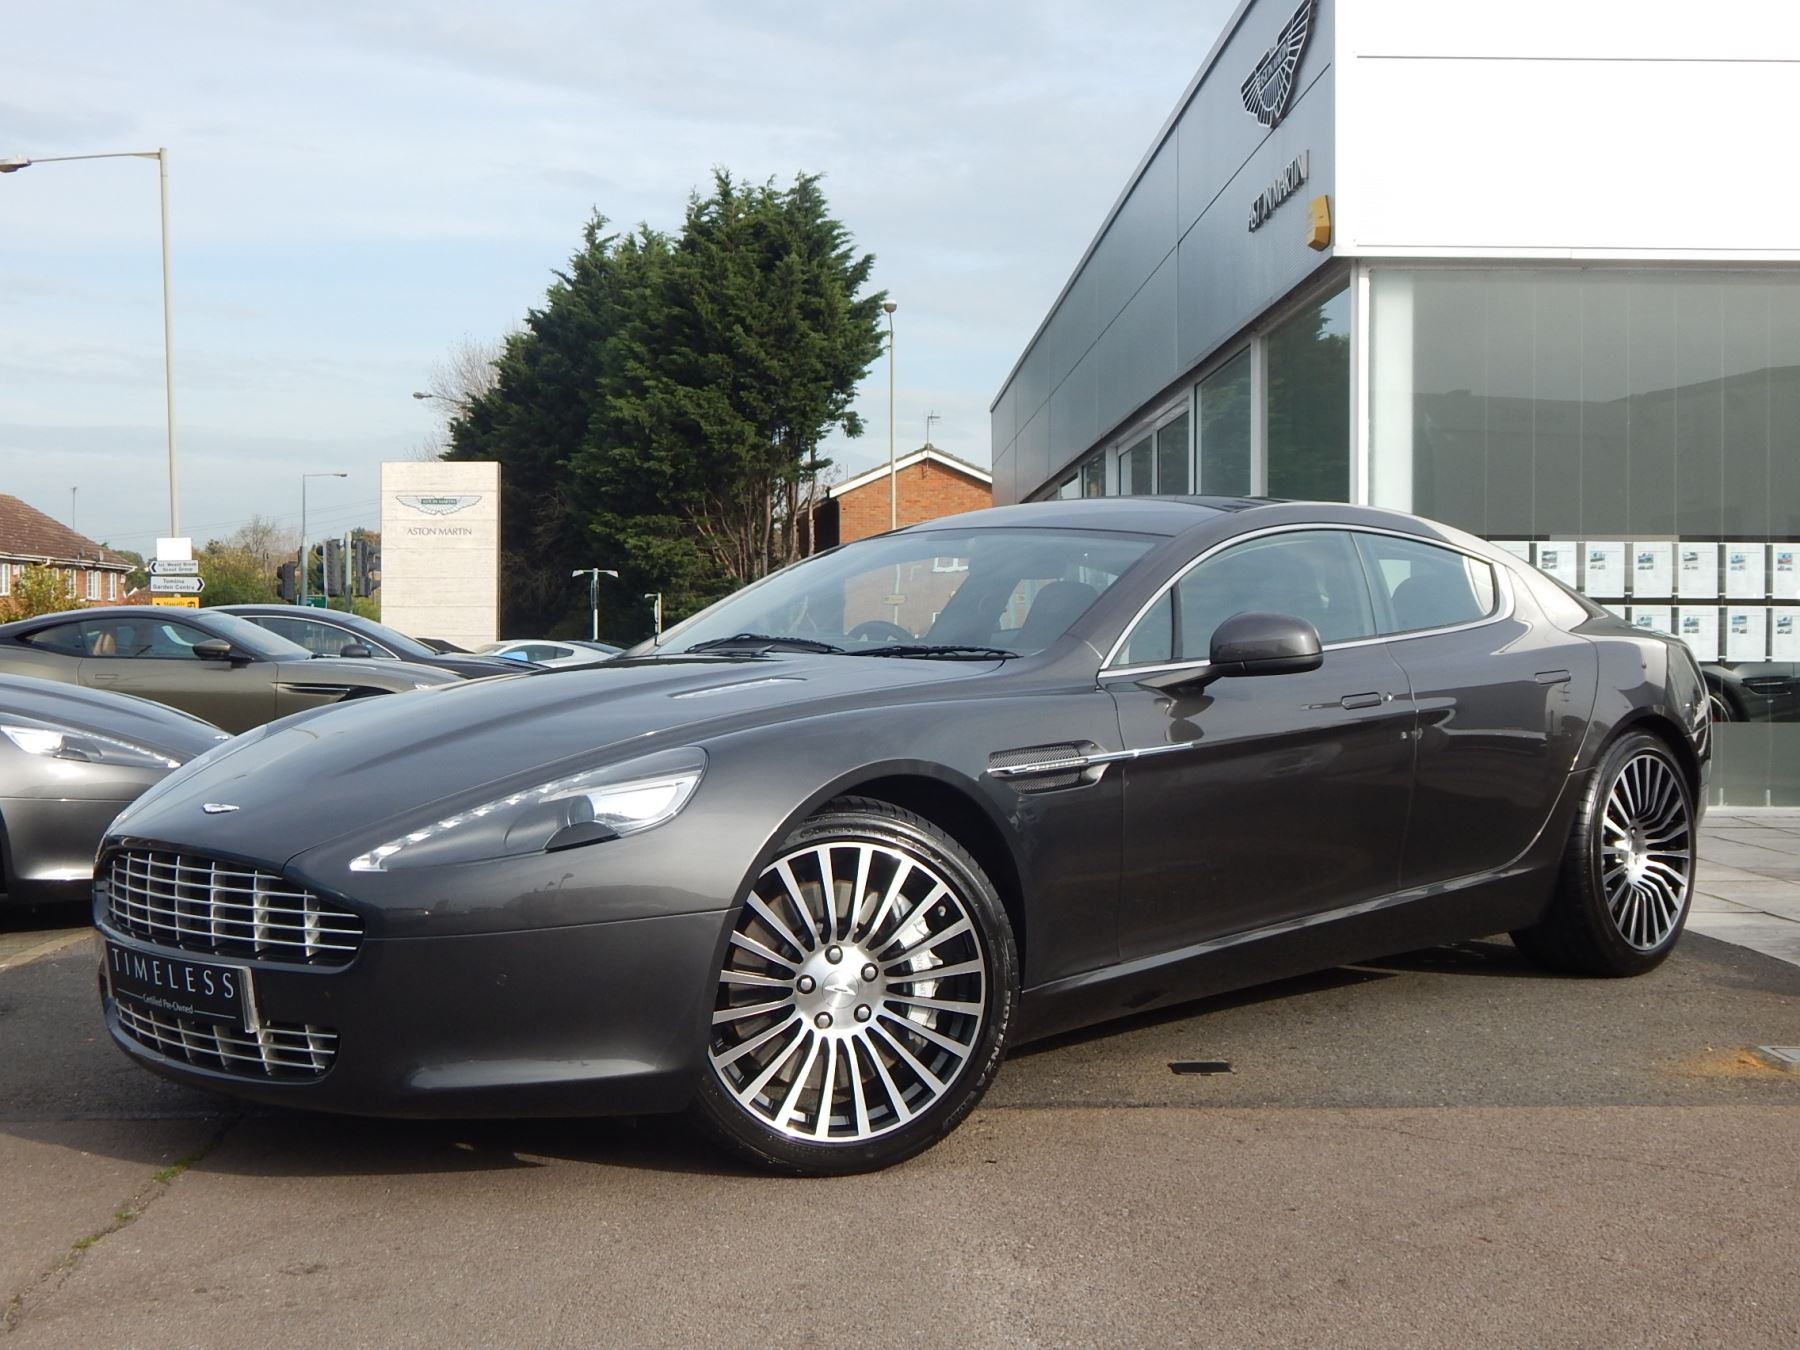 Aston Martin Rapide Coupe 6.0 Automatic 4 door Saloon (2011) image